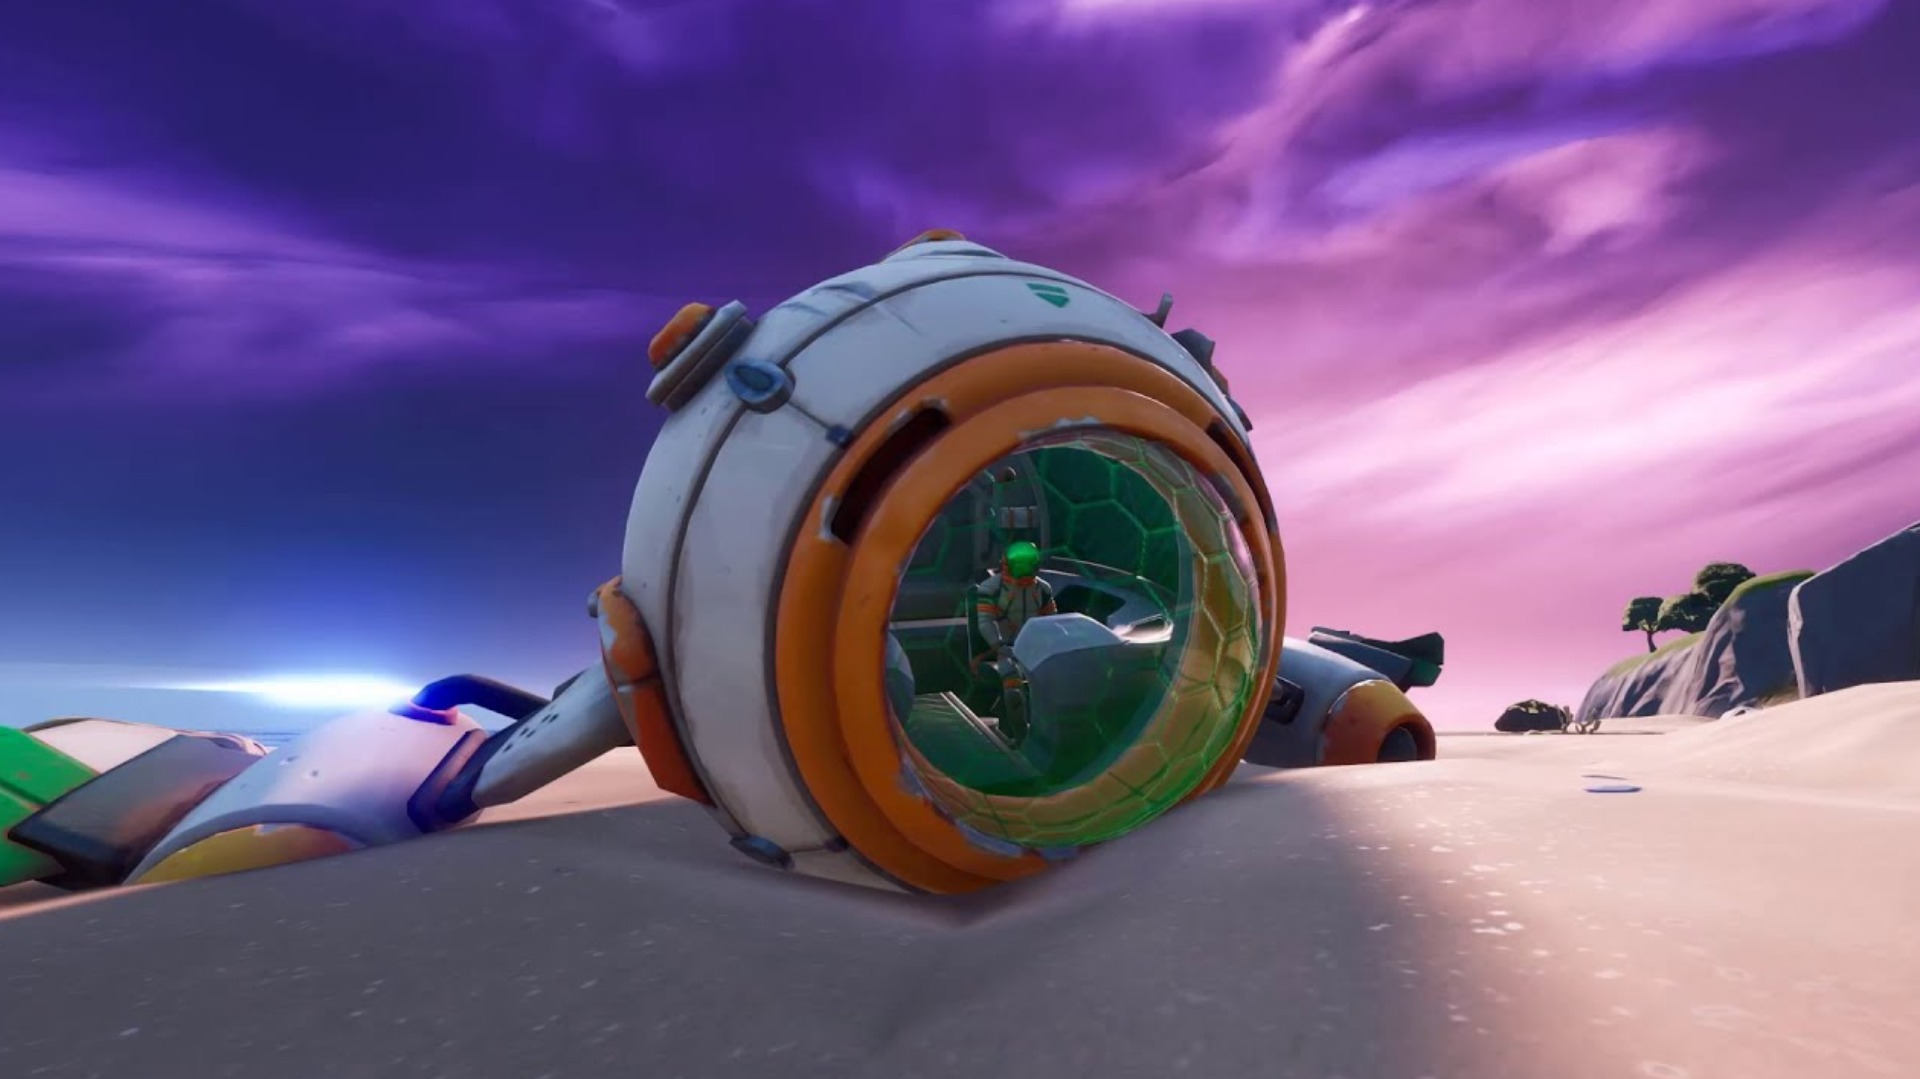 7 Sky Bases Fortnite What Will Be The Theme Of Fortnite Chapter 2 Season 7 Fortnite News Ggrecon